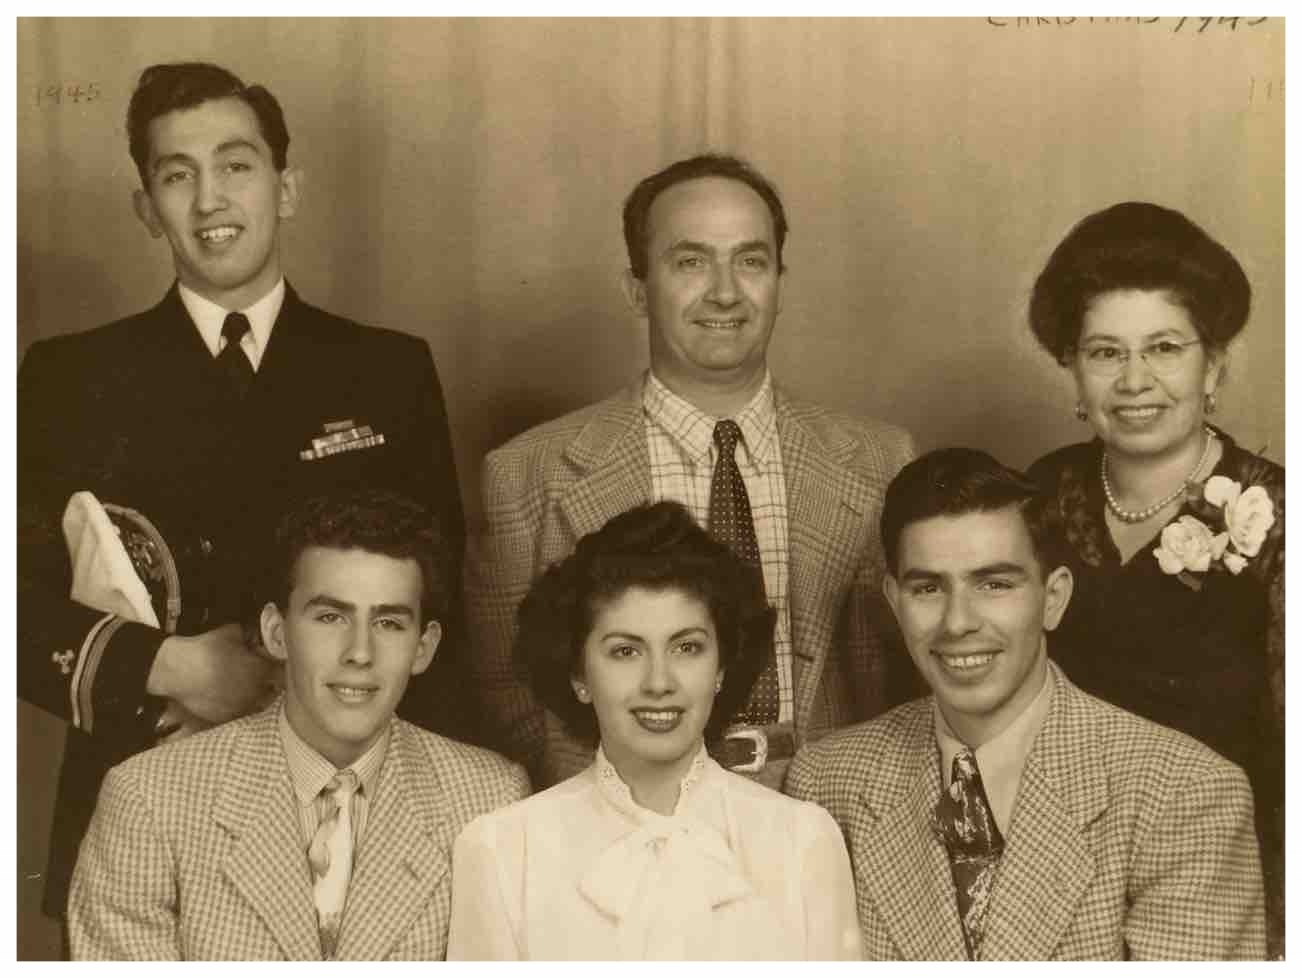 Christmas 1945 (Jose and Maria Gargiulo upper right. Frank Gargiulo, bottom left)